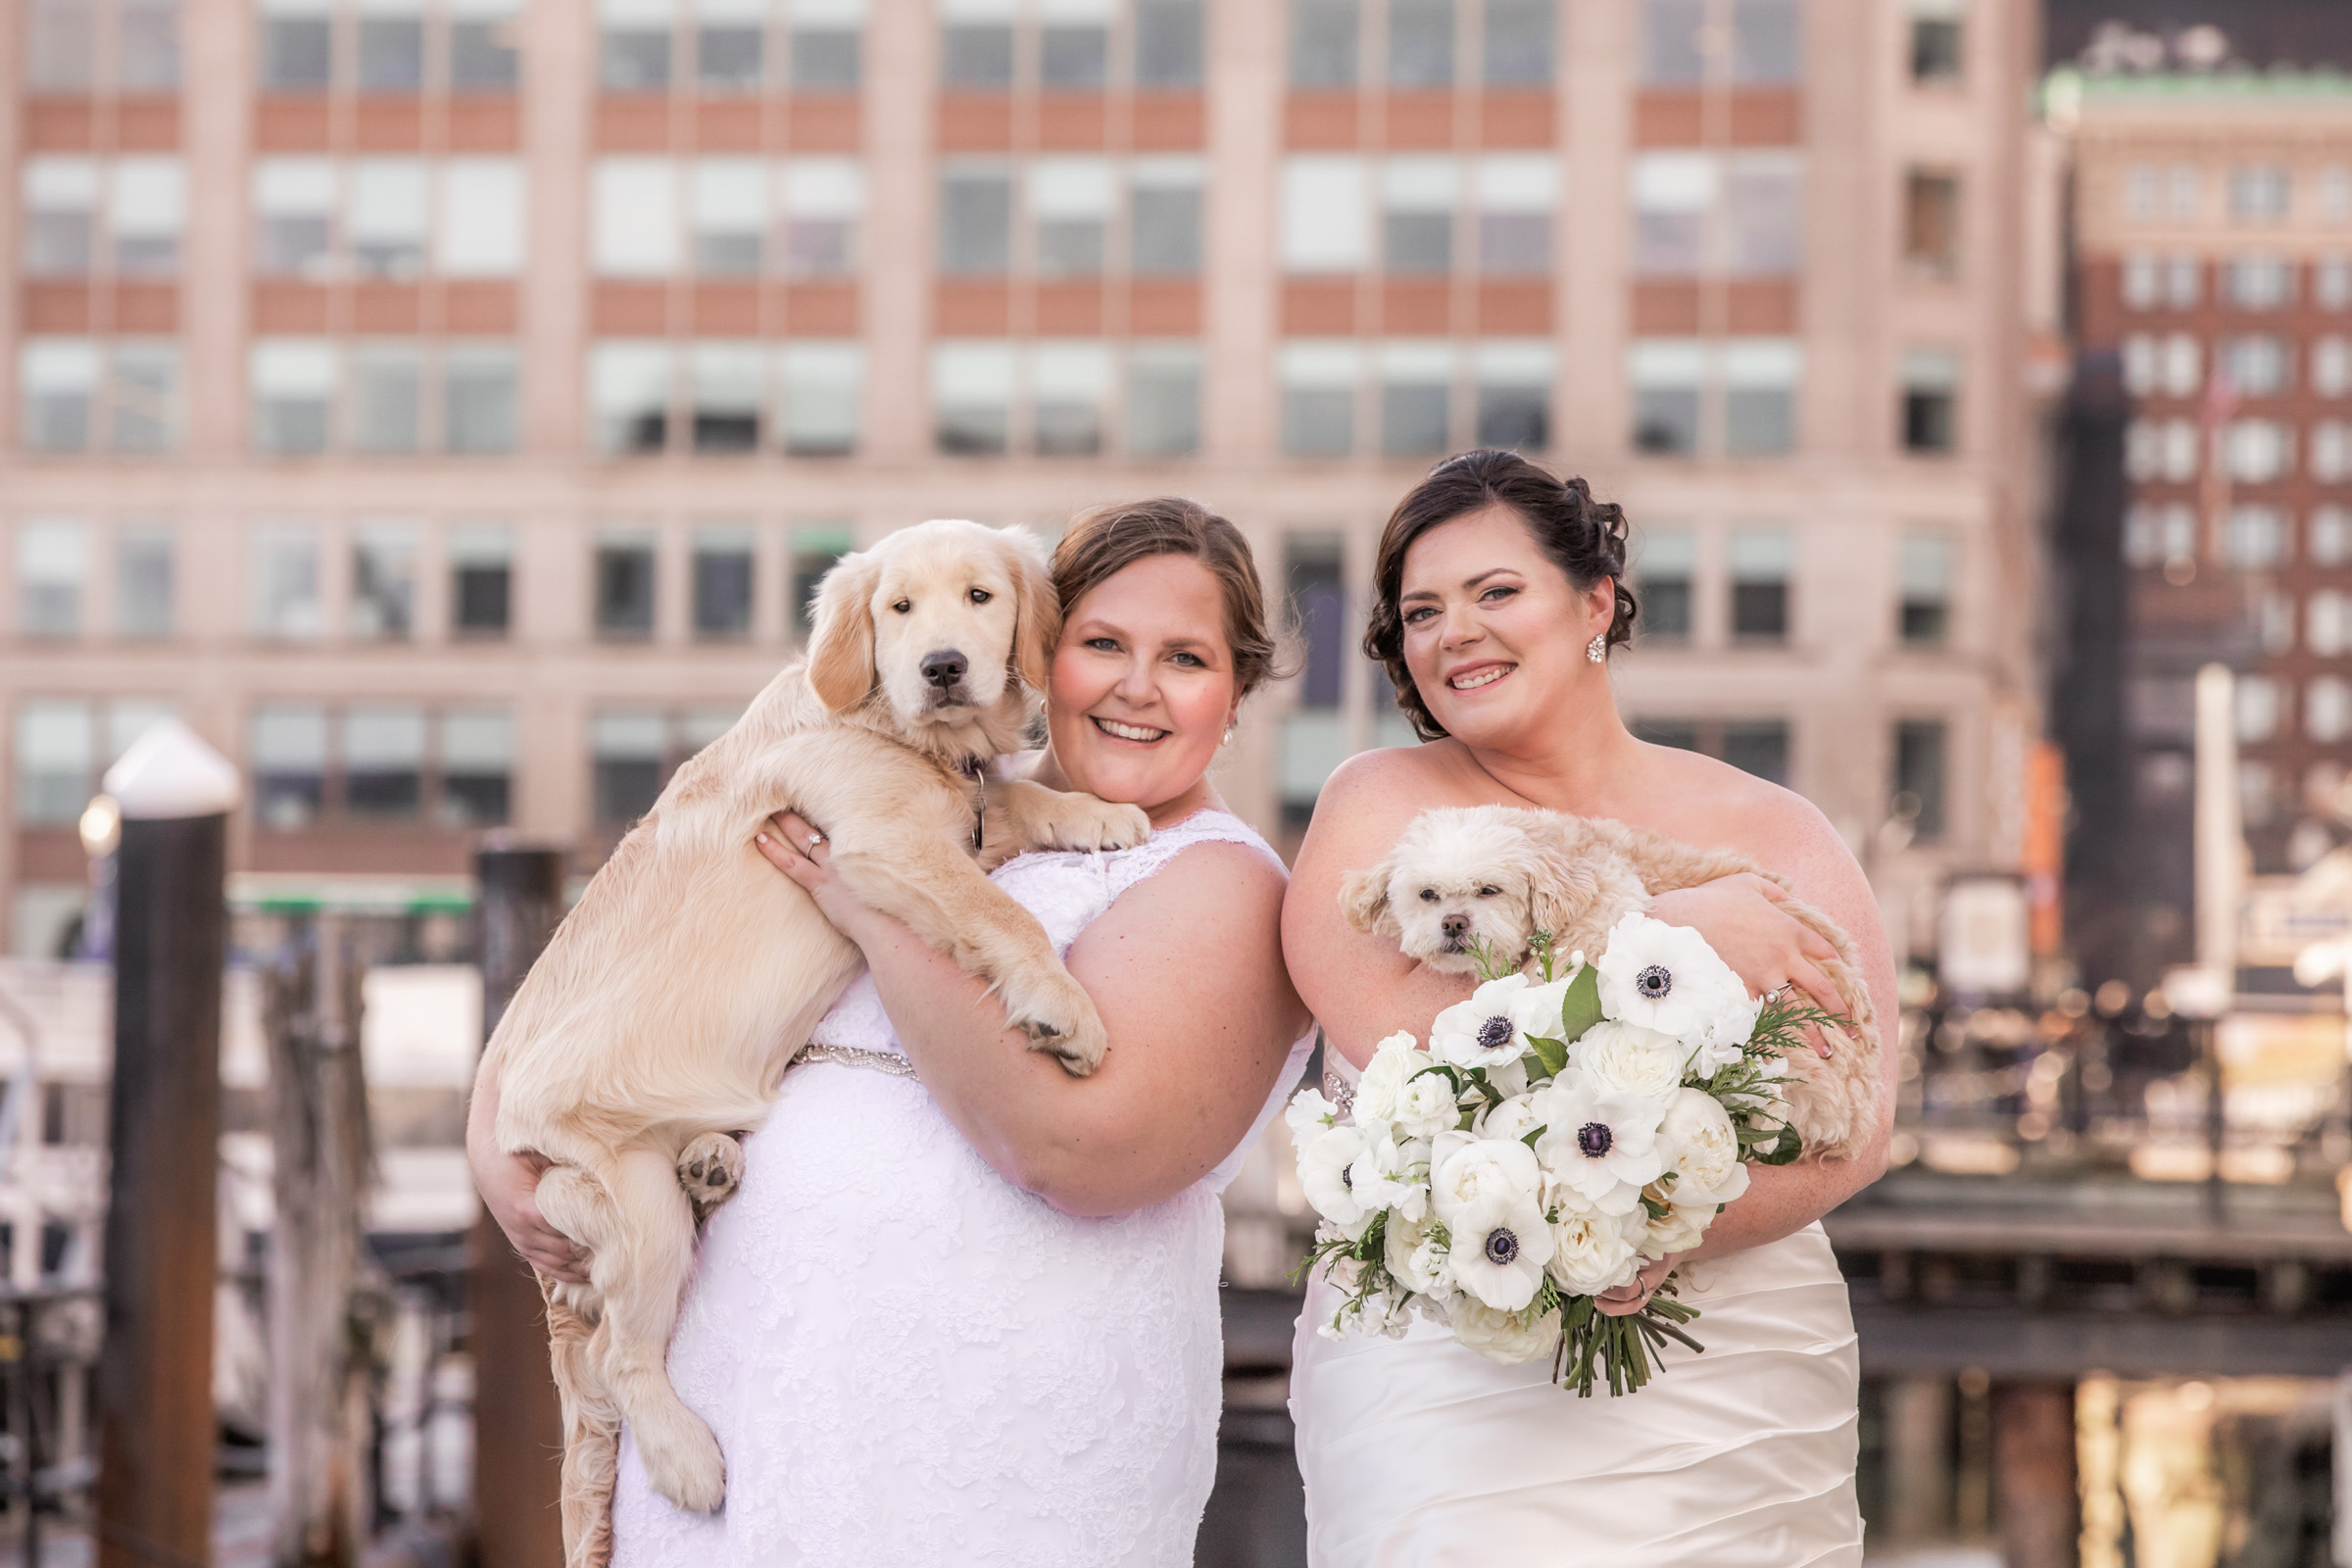 Bride couple holding their dogs - photo by Katie Kaizer Photography